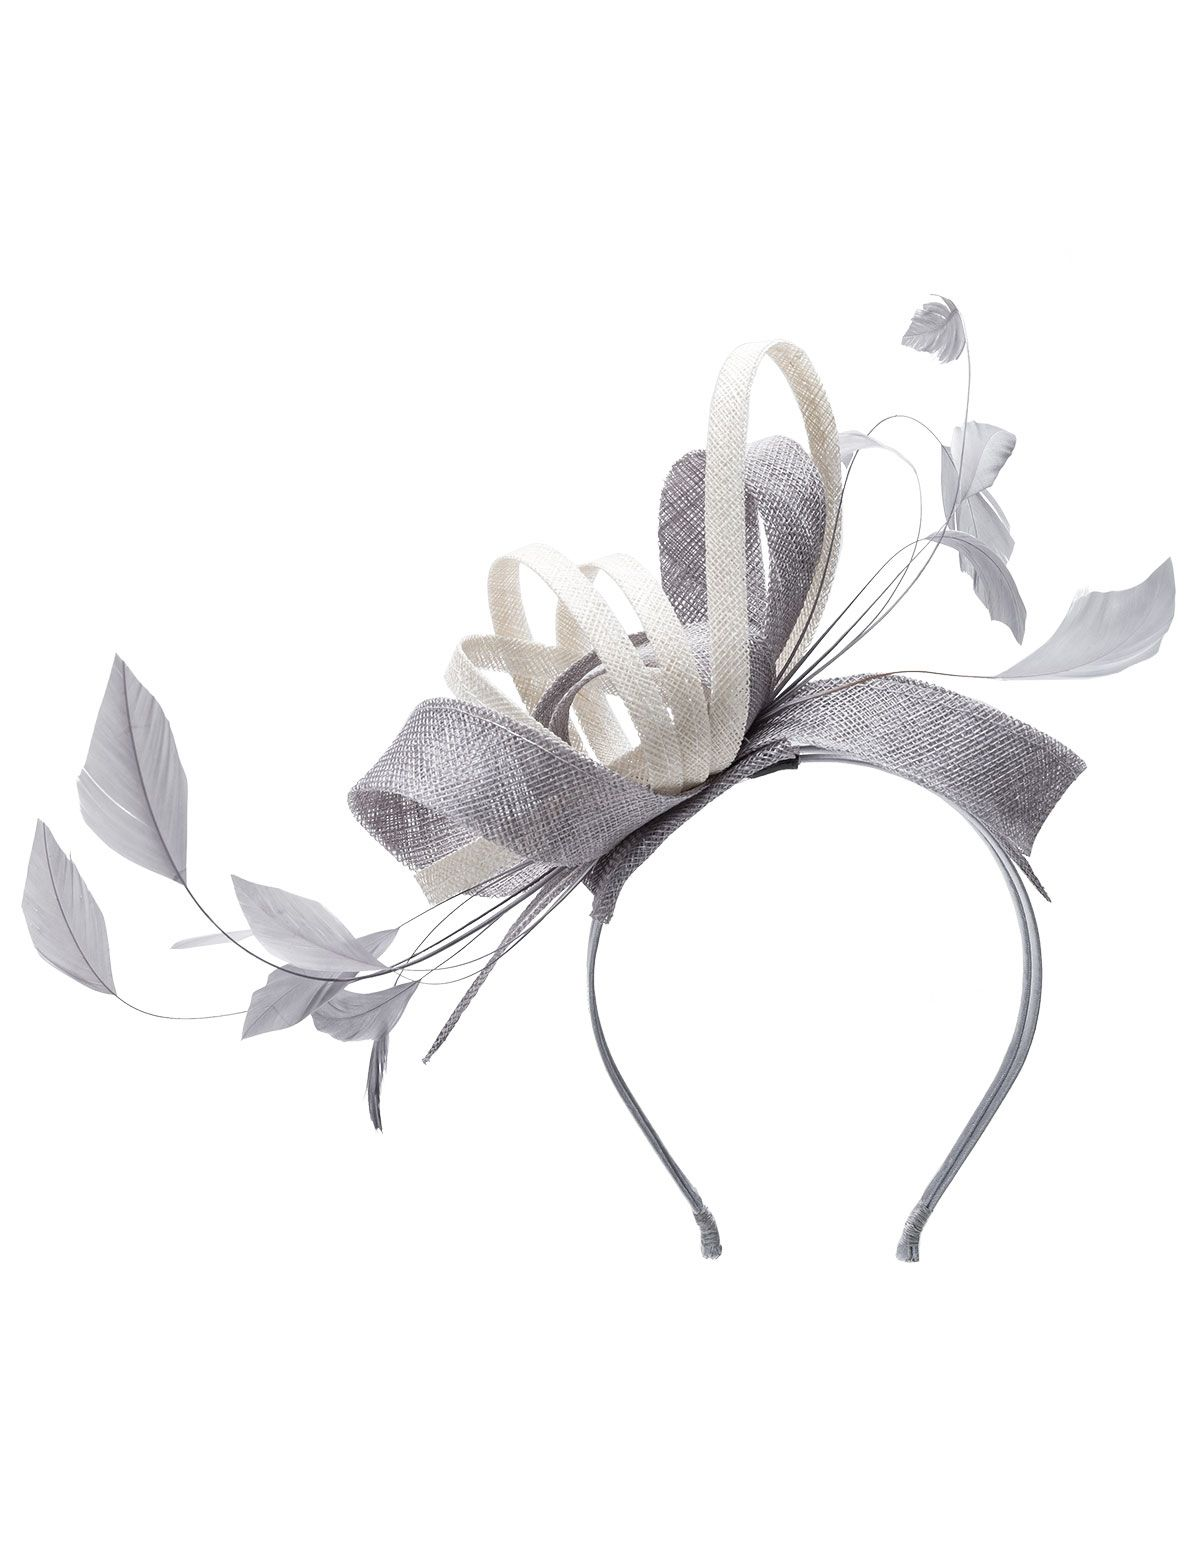 Mascara Two tone feather fascinator in Silver   Ivory-White  a6ccca55e53